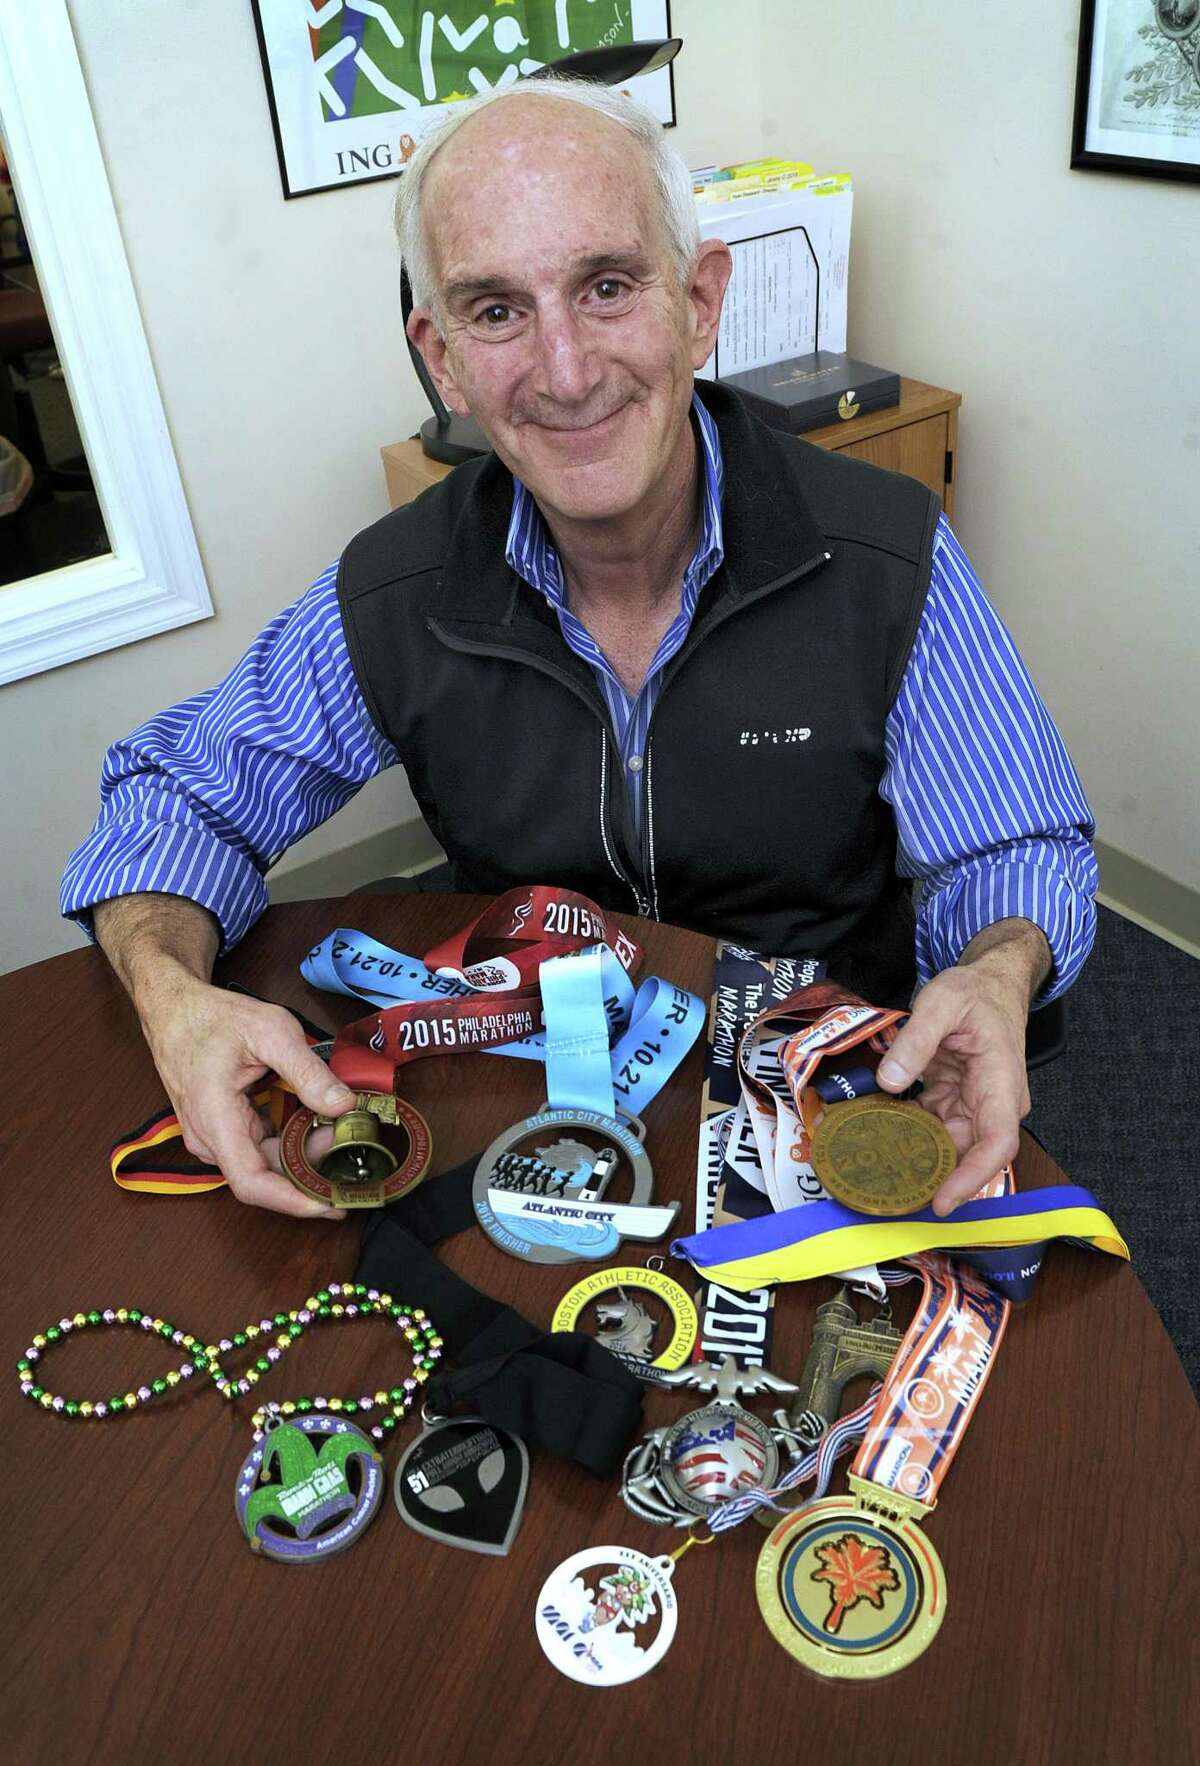 Bill Gross, 64, of Ridgefield, a marathon runner, with some of his medals. Gross is the owner and director of the Brookfield Learning Center.